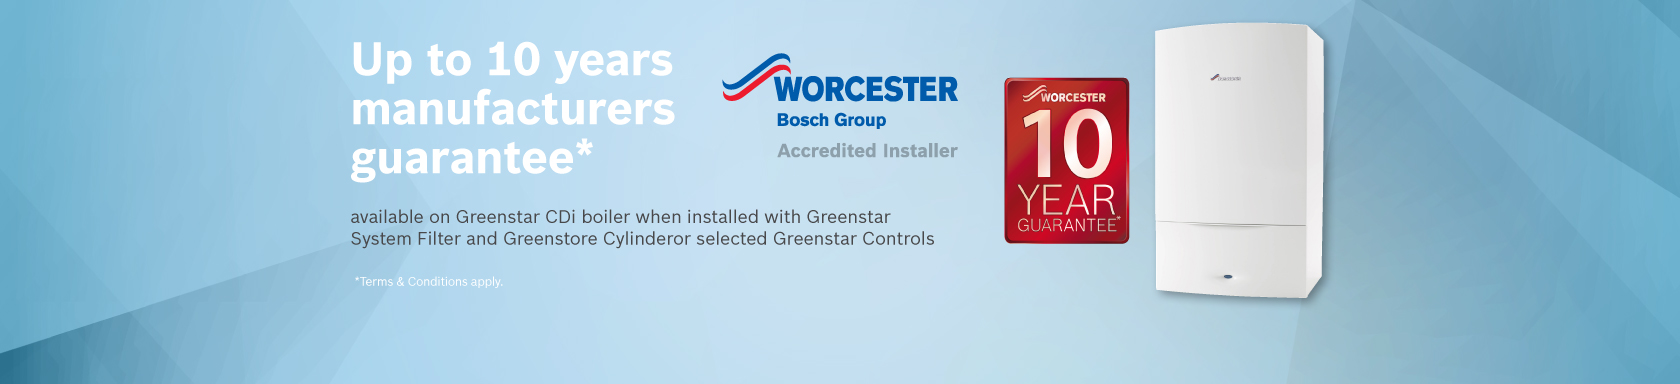 Worcester Guarantee Rhos on sea